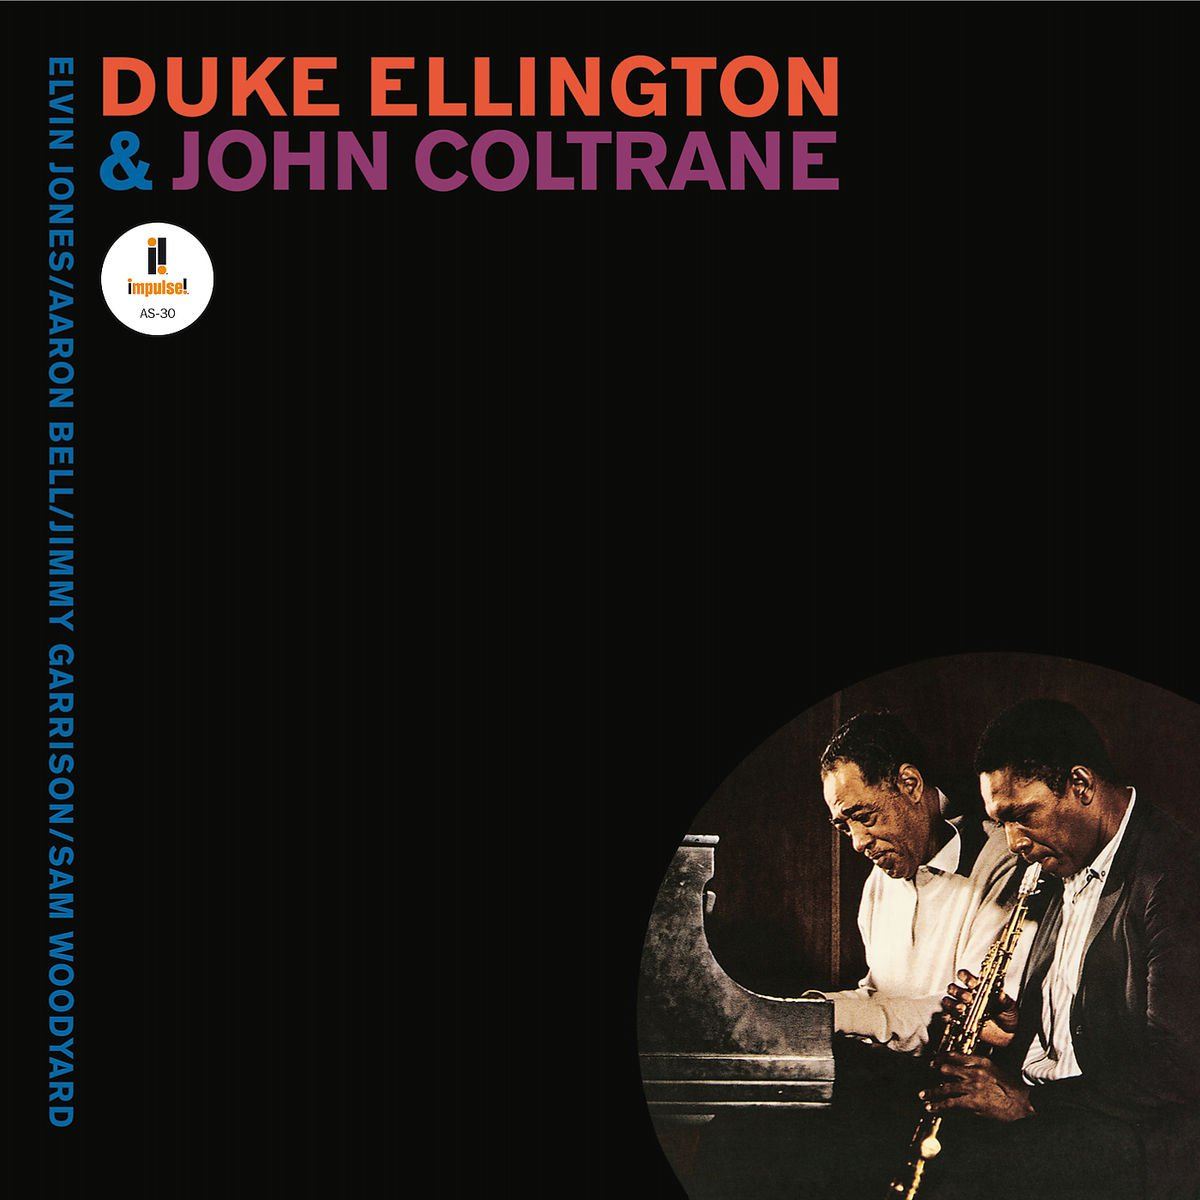 Duke Ellington. Duke Ellington & John Coltrane duke ellington it s showtime